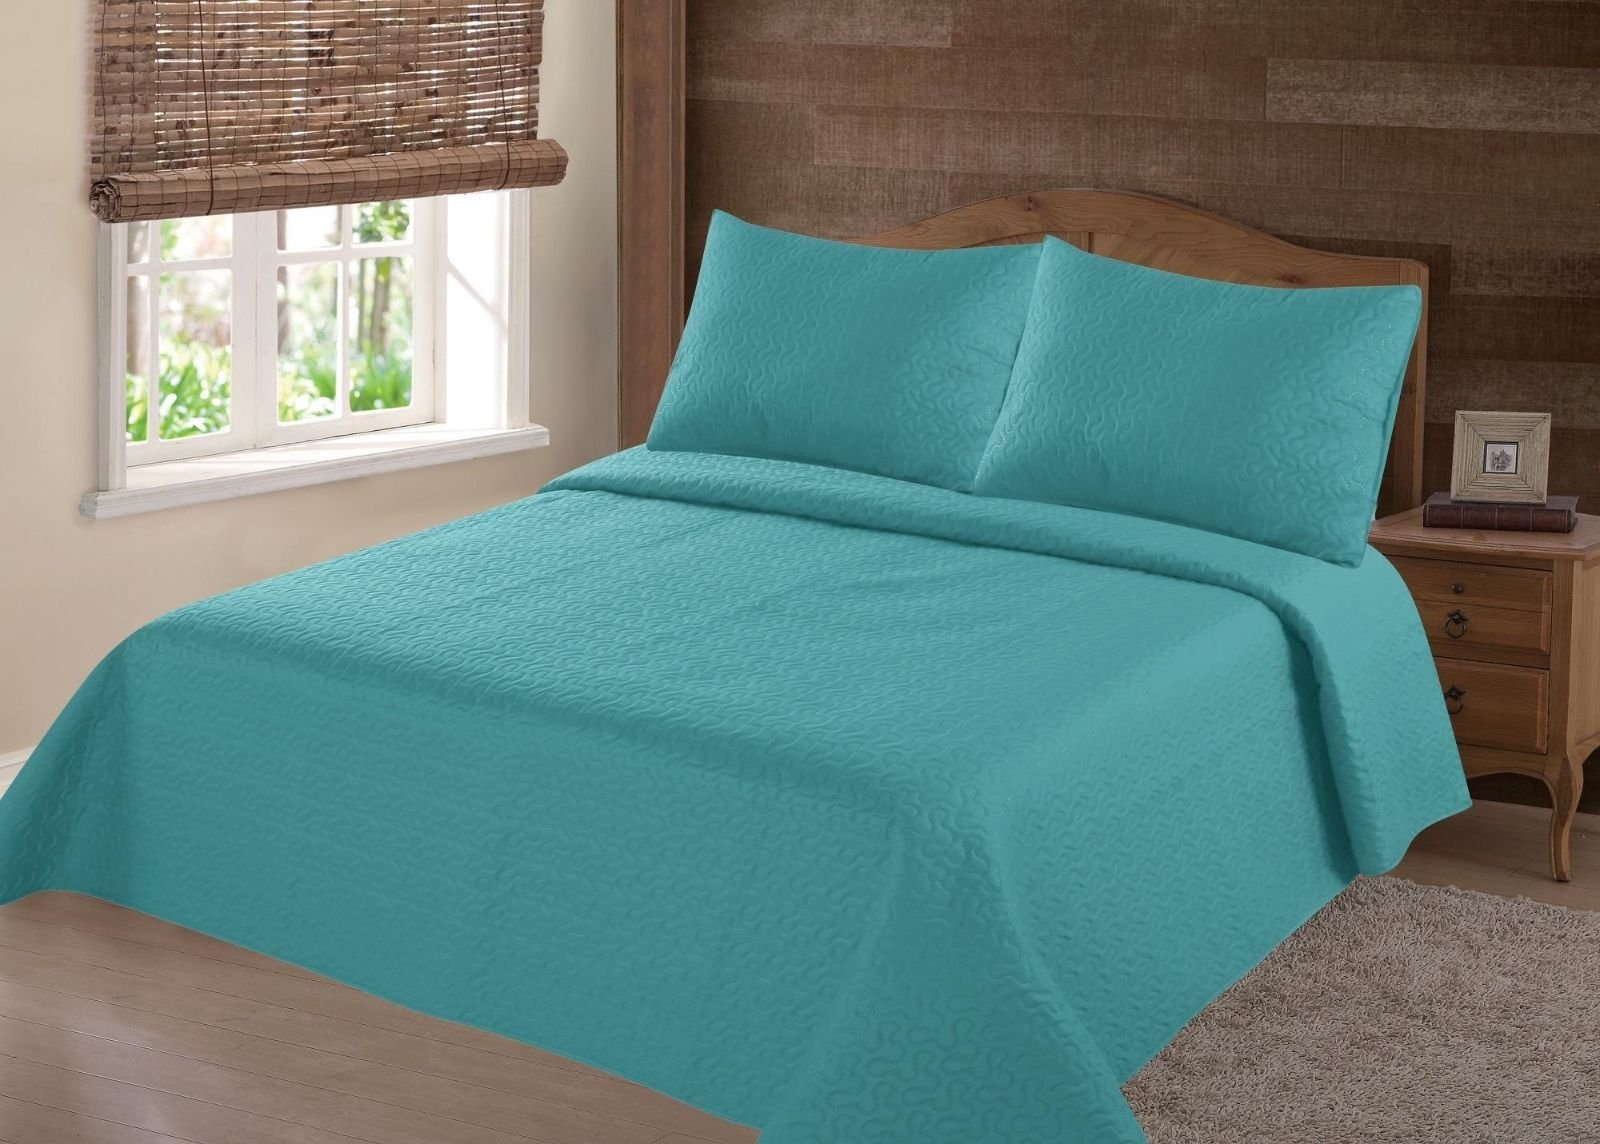 NEW 2/3PC NENA BED BEDSPREAD QUILT SET COVERLET SOLID STIPPLING STITCHE MODERN /Full -Turquoise